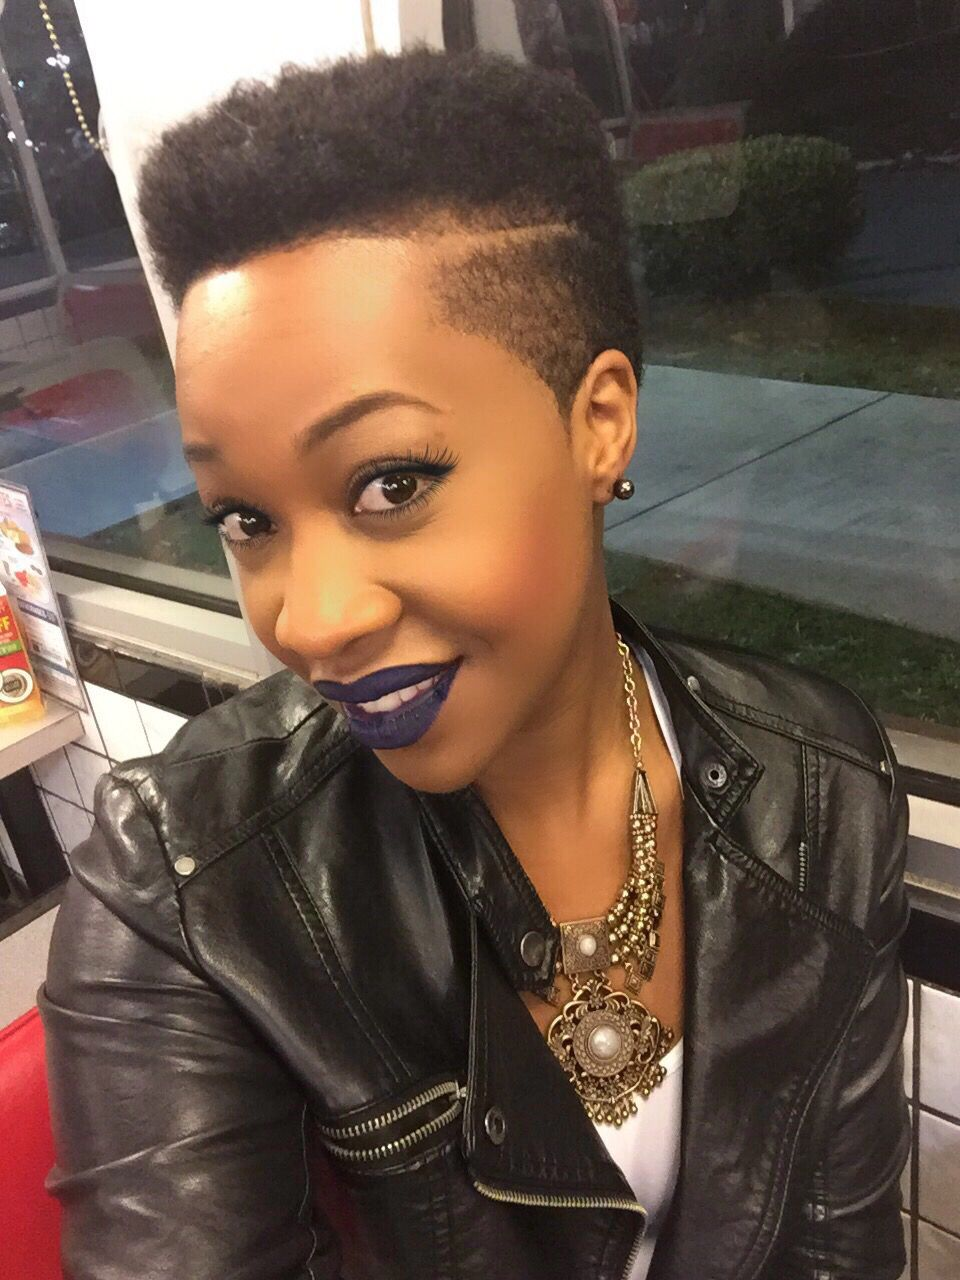 tapered fade, twa, side part, low cuts, natural hair, black